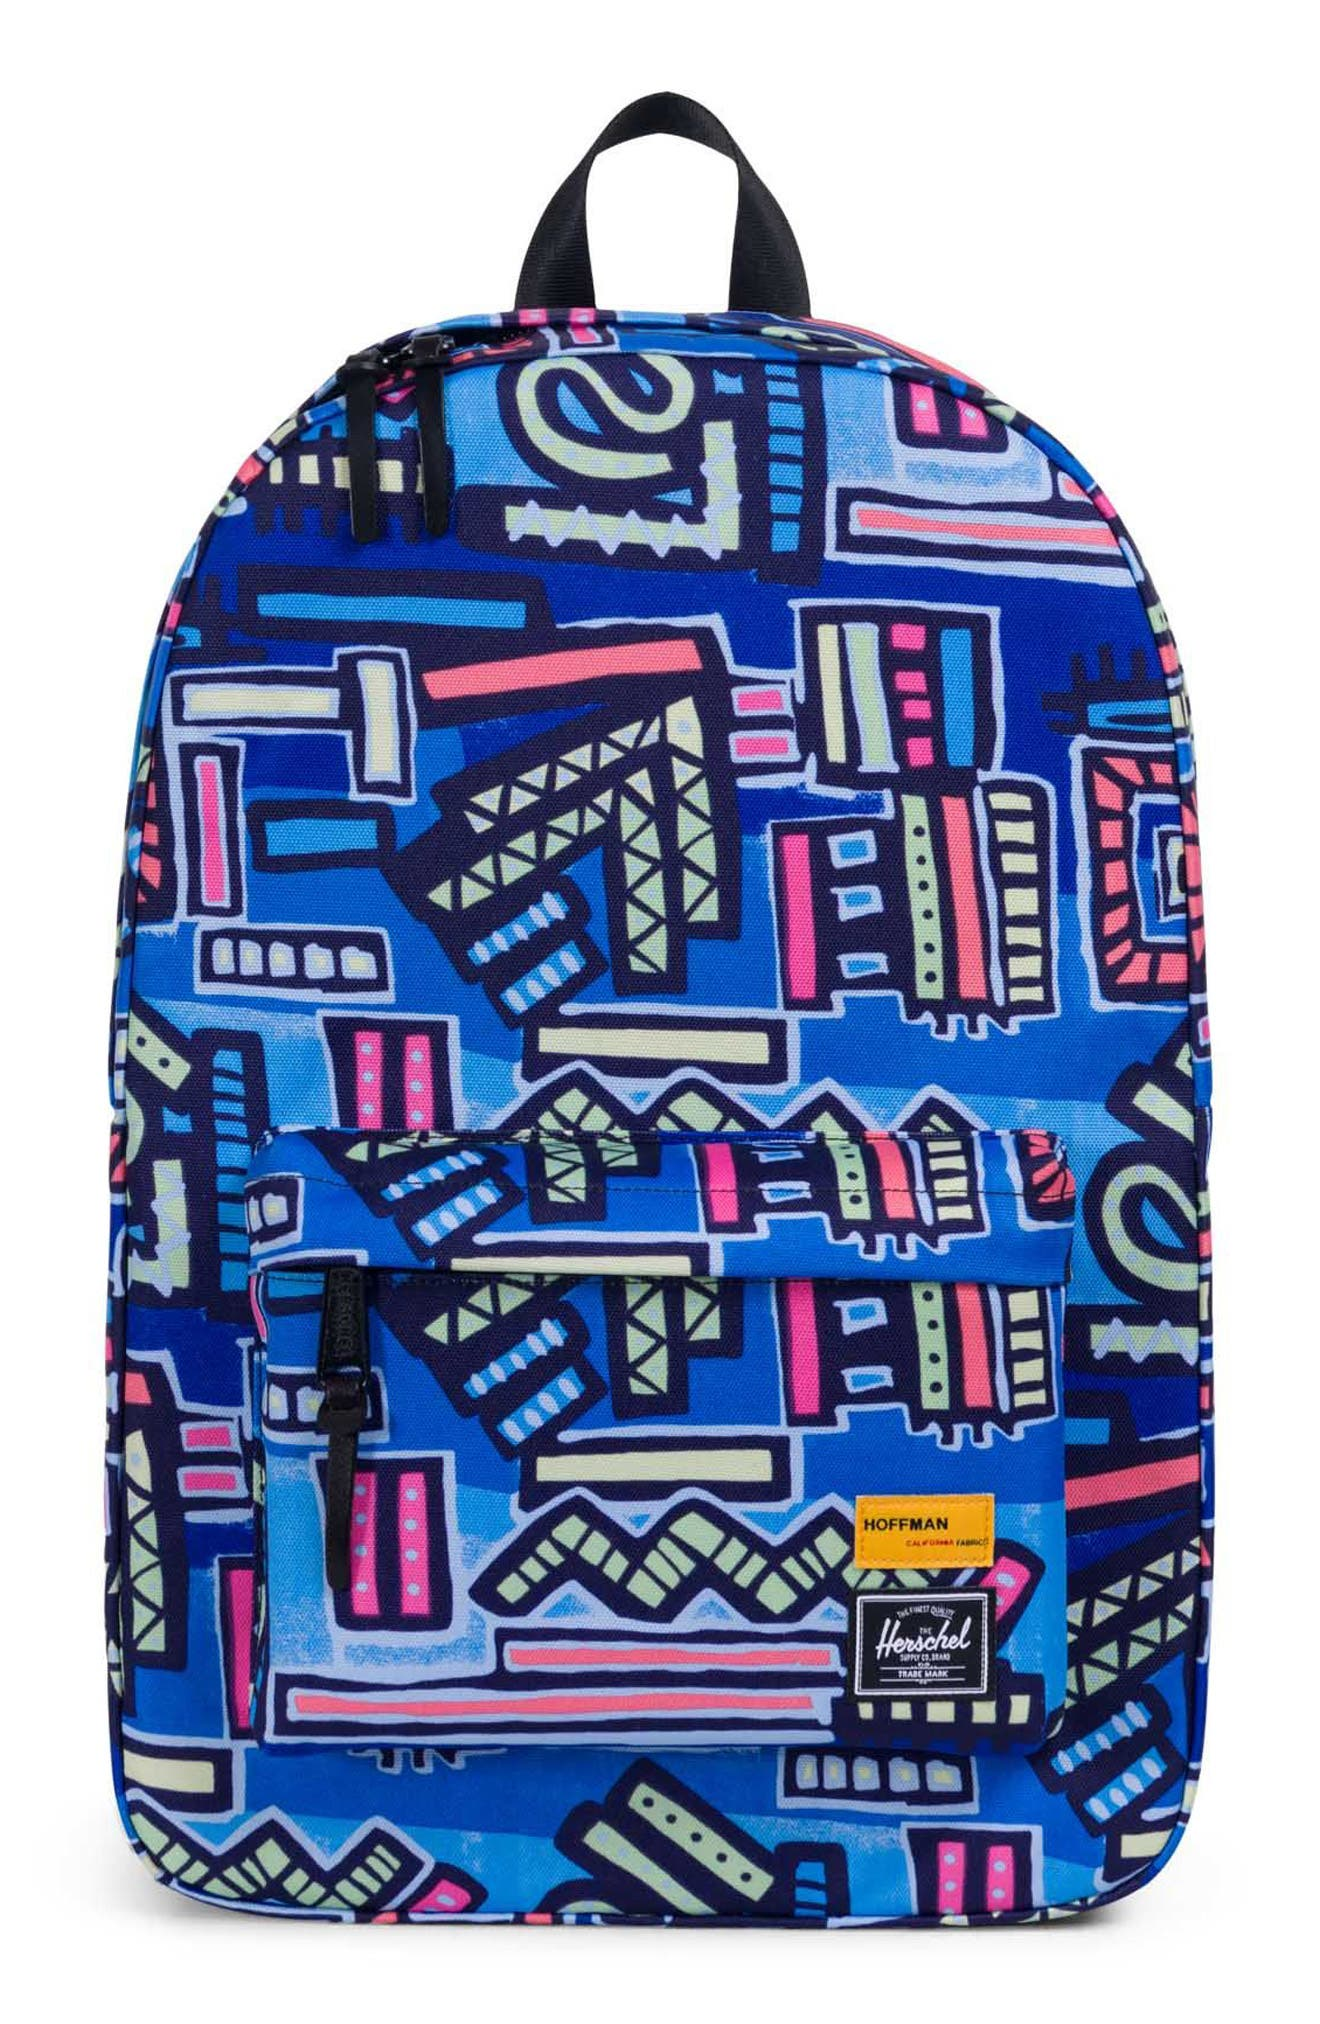 Winlaw - Hoffman Backpack,                         Main,                         color, Abstract Geo Blue